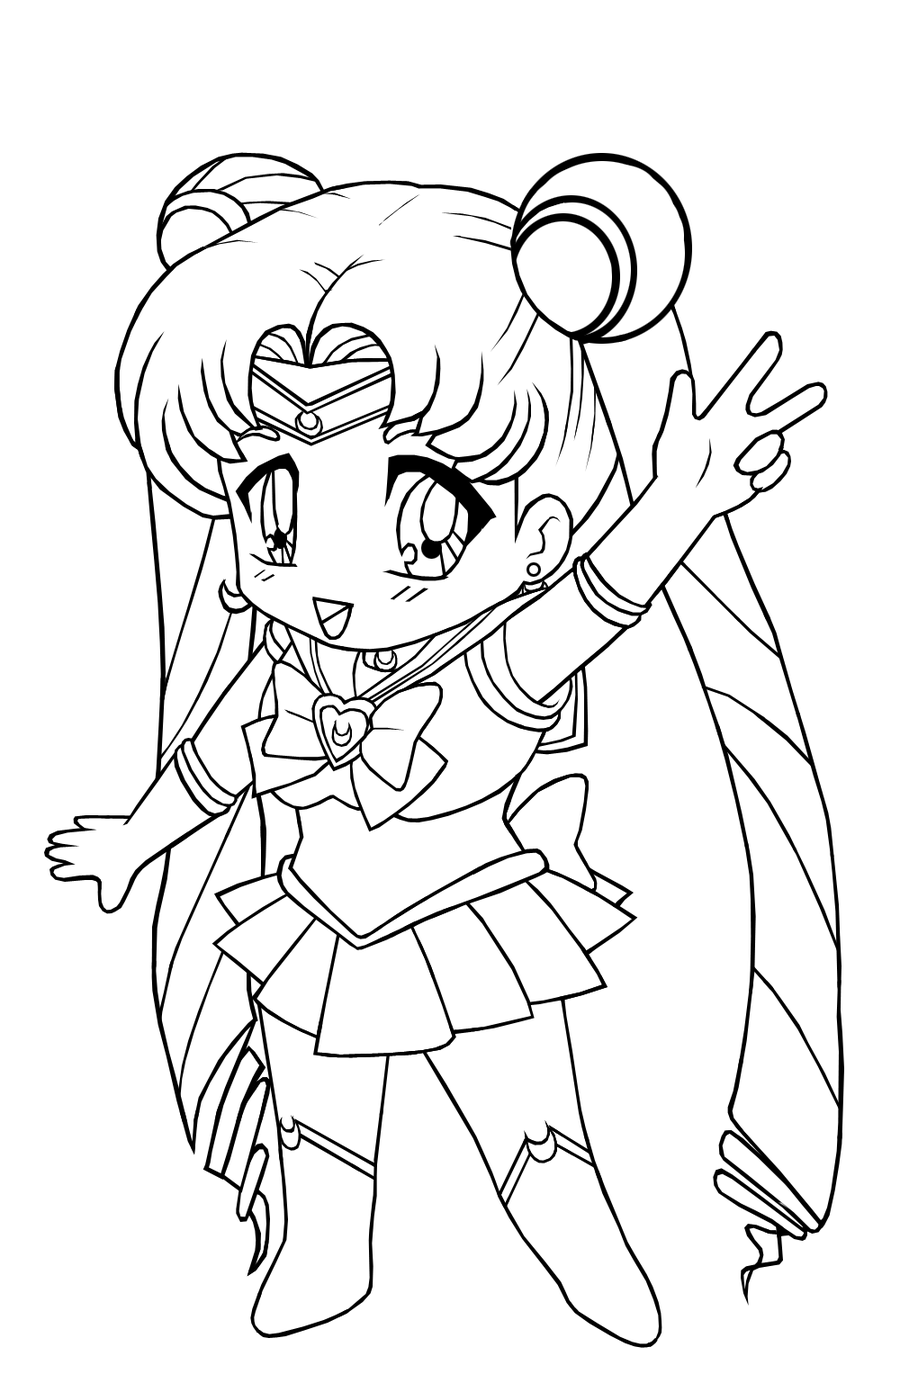 animation coloring pages free printable anime coloring pages coloring home coloring pages animation